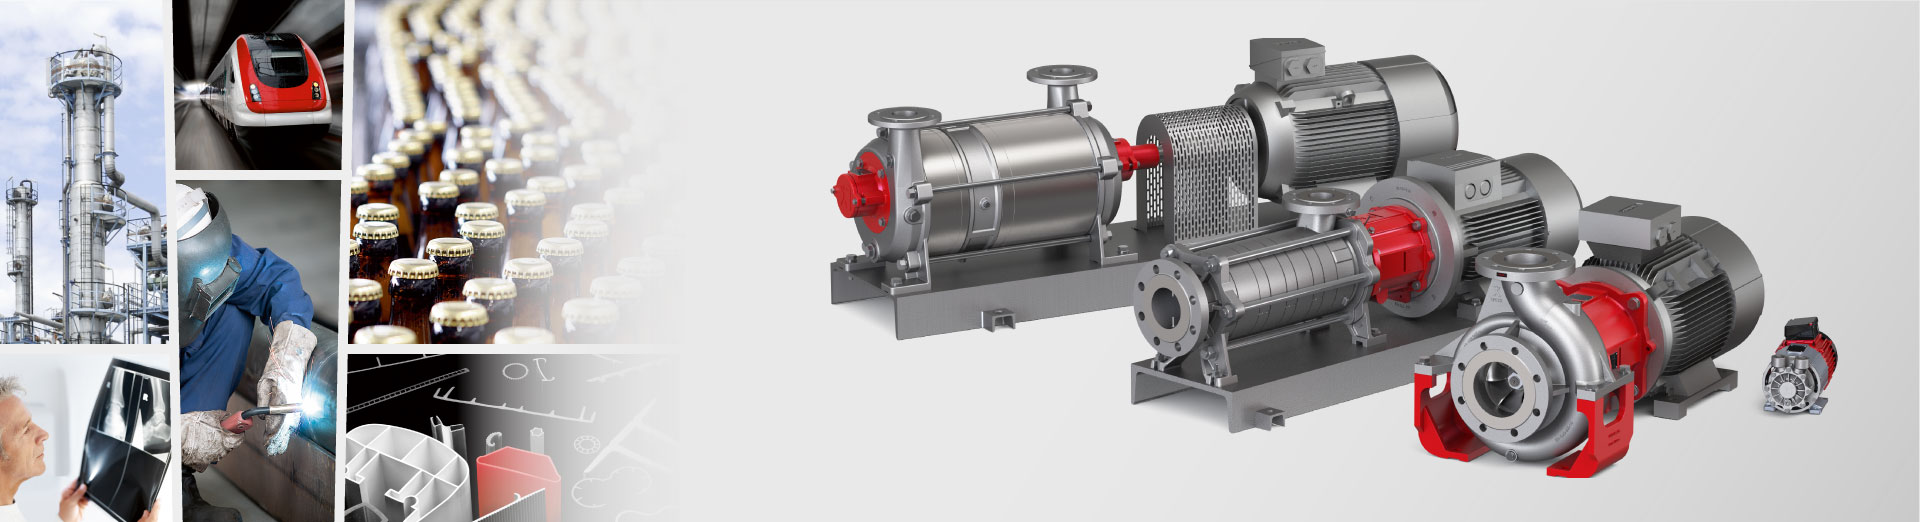 High-quality  pumps  and compressors  for industry